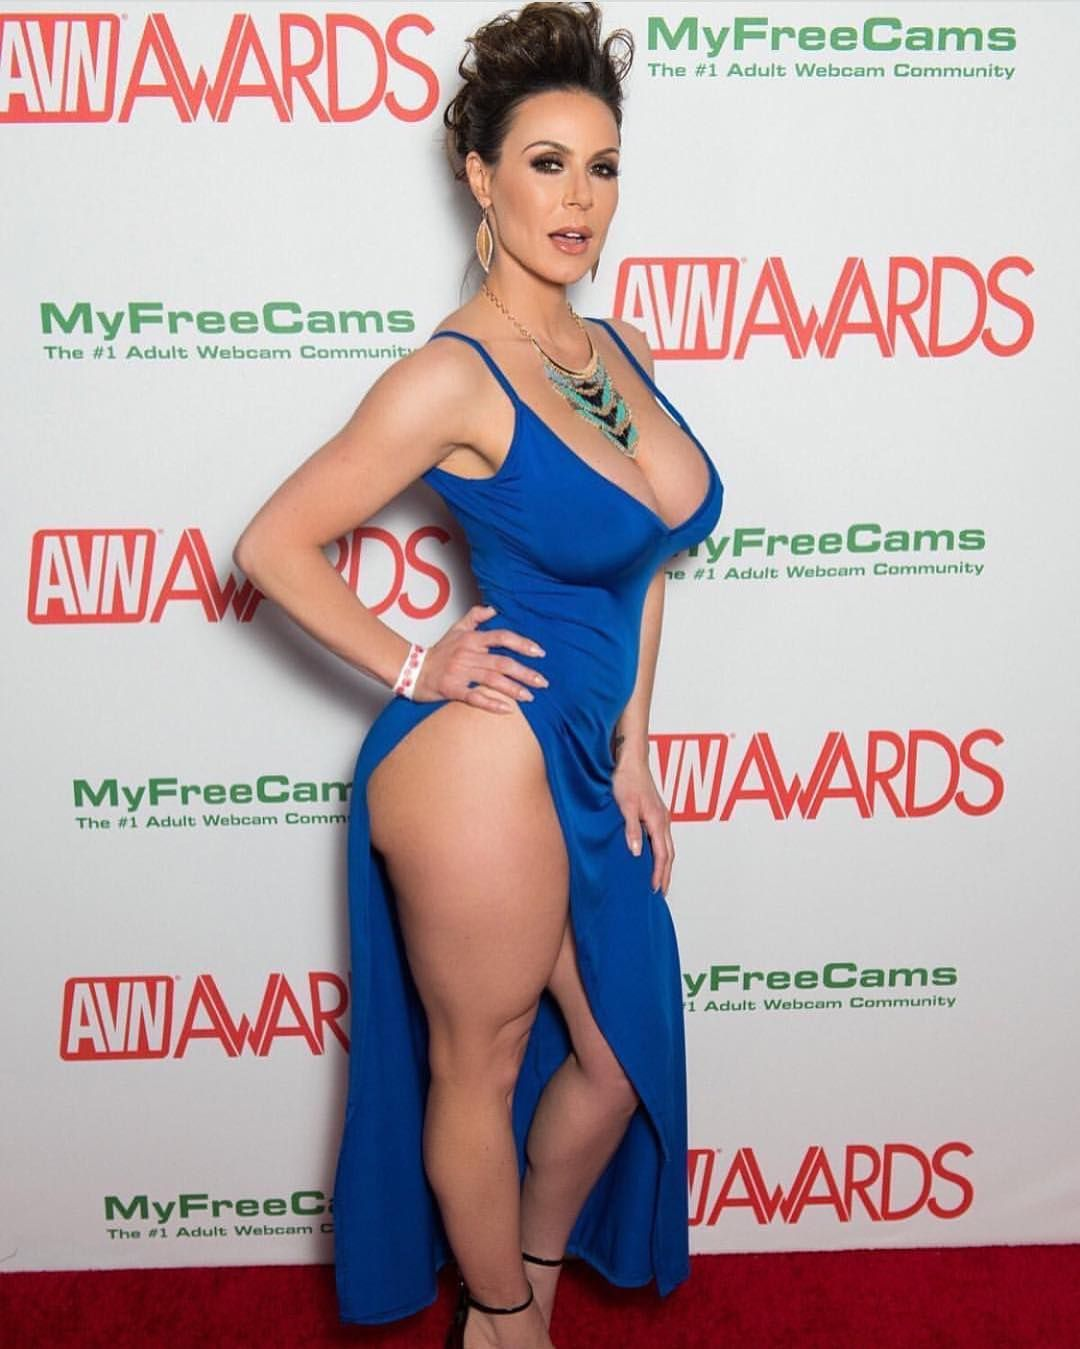 Delicious And Hot In 2019: Kendra Lust️ (gorgeous Model) In Sensual Blue Dress At The